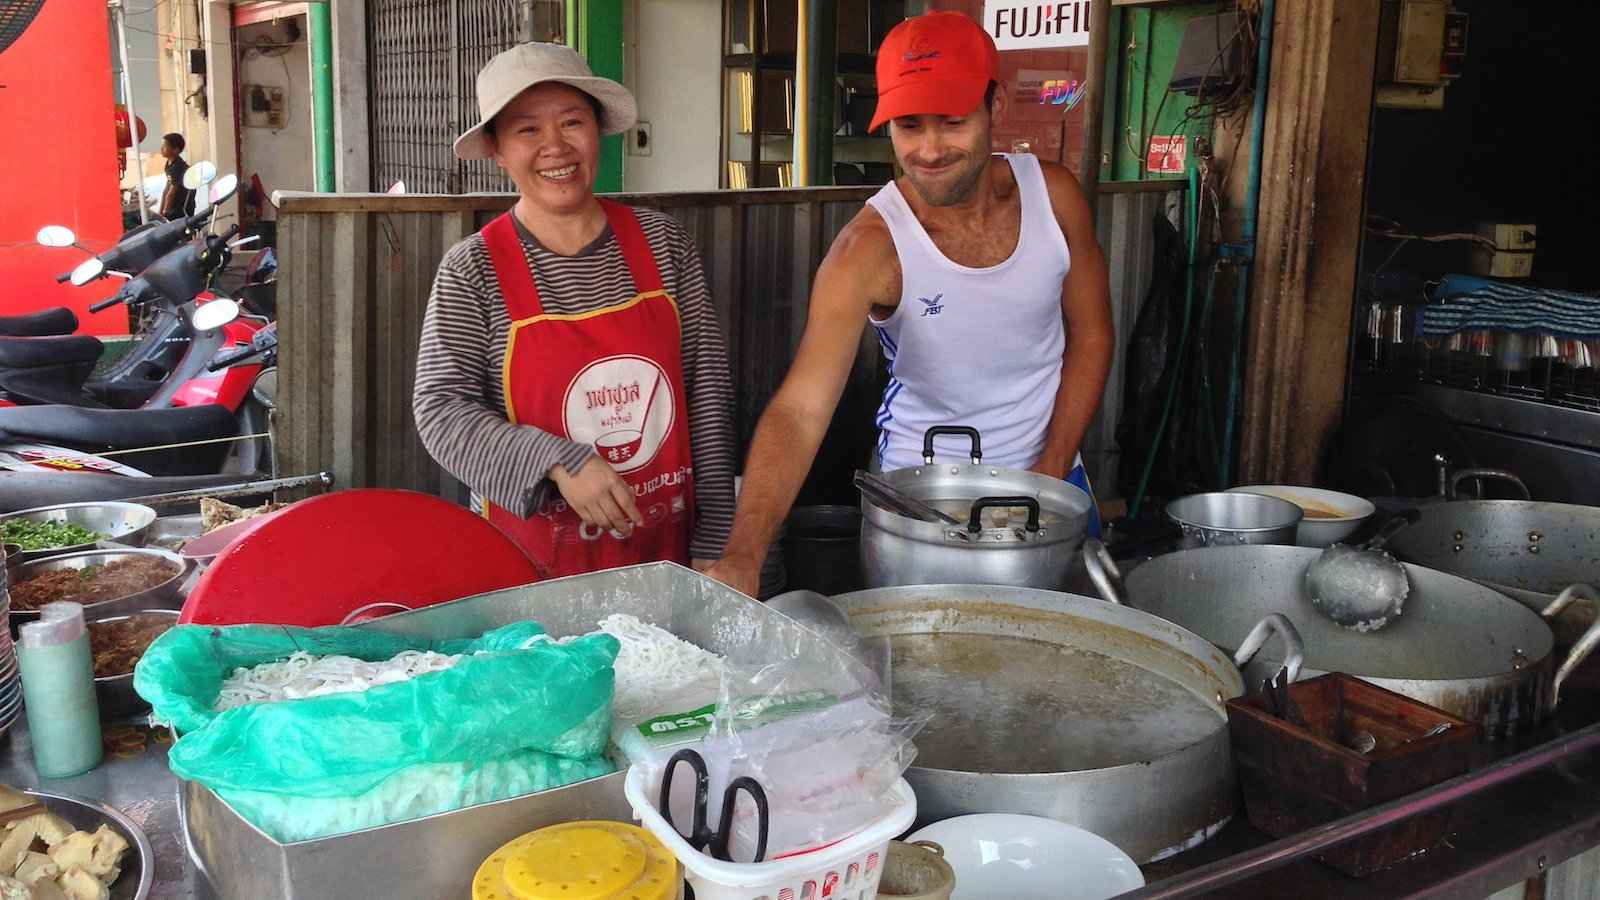 Pho is a Vietnamese dish which spread to Laos where you can try the Laotian version at many street food stalls